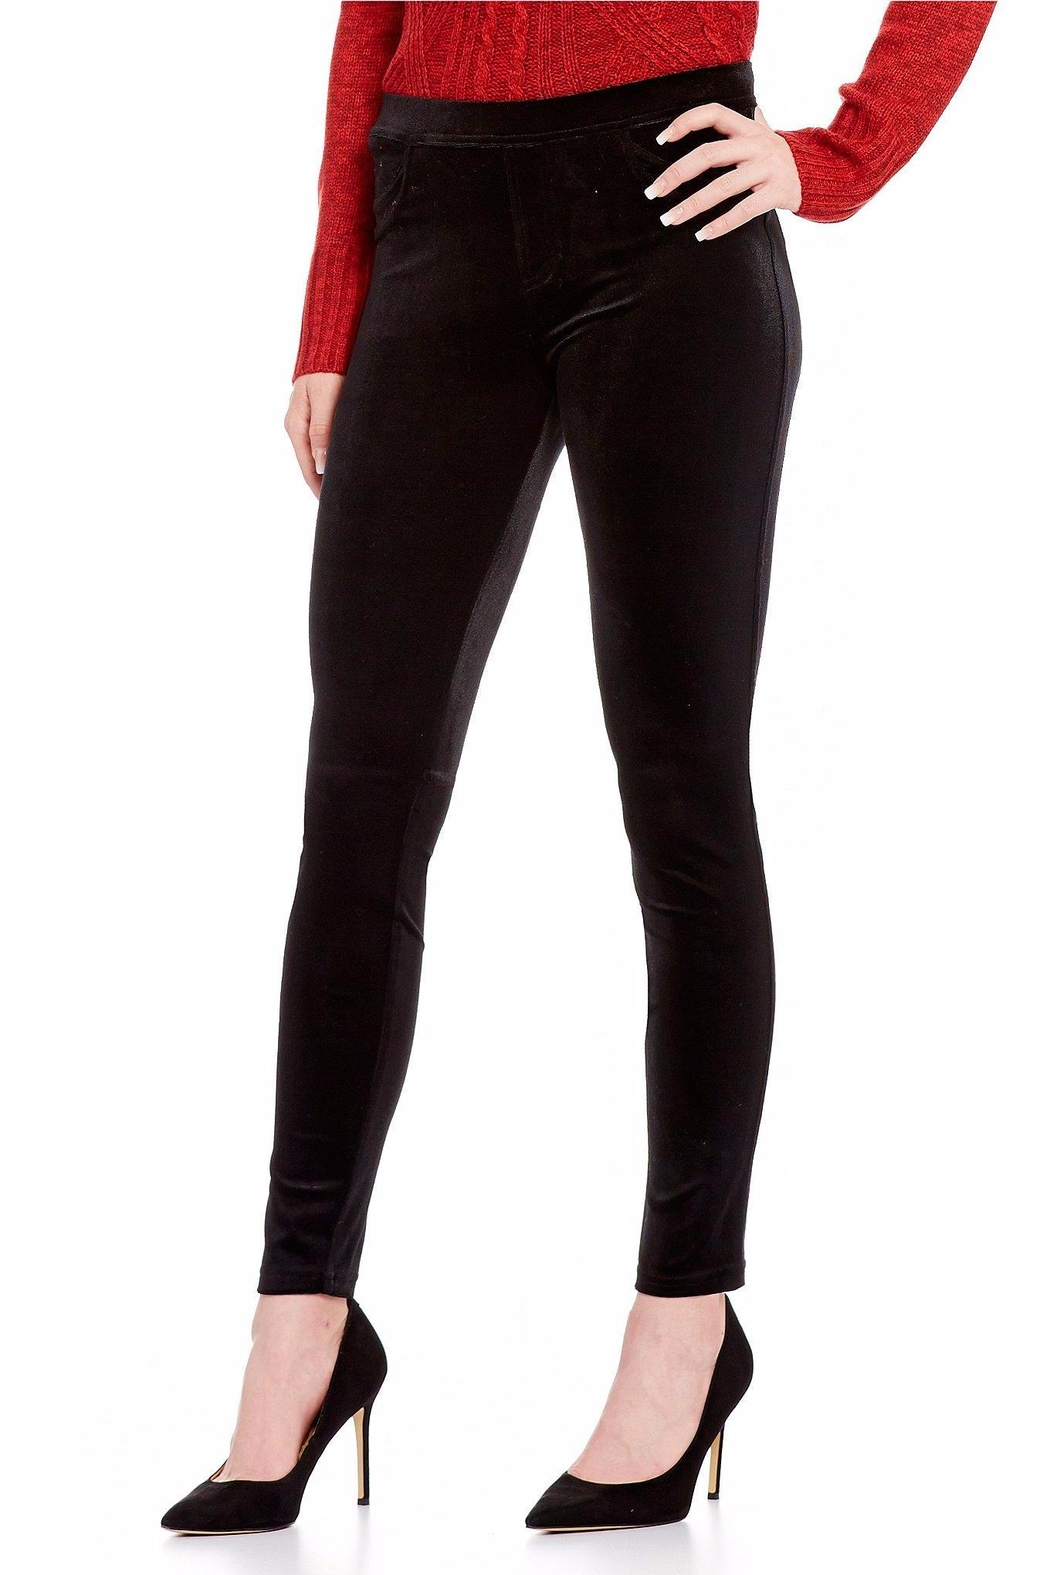 Sanctuary Velvet Grease Legging - Main Image